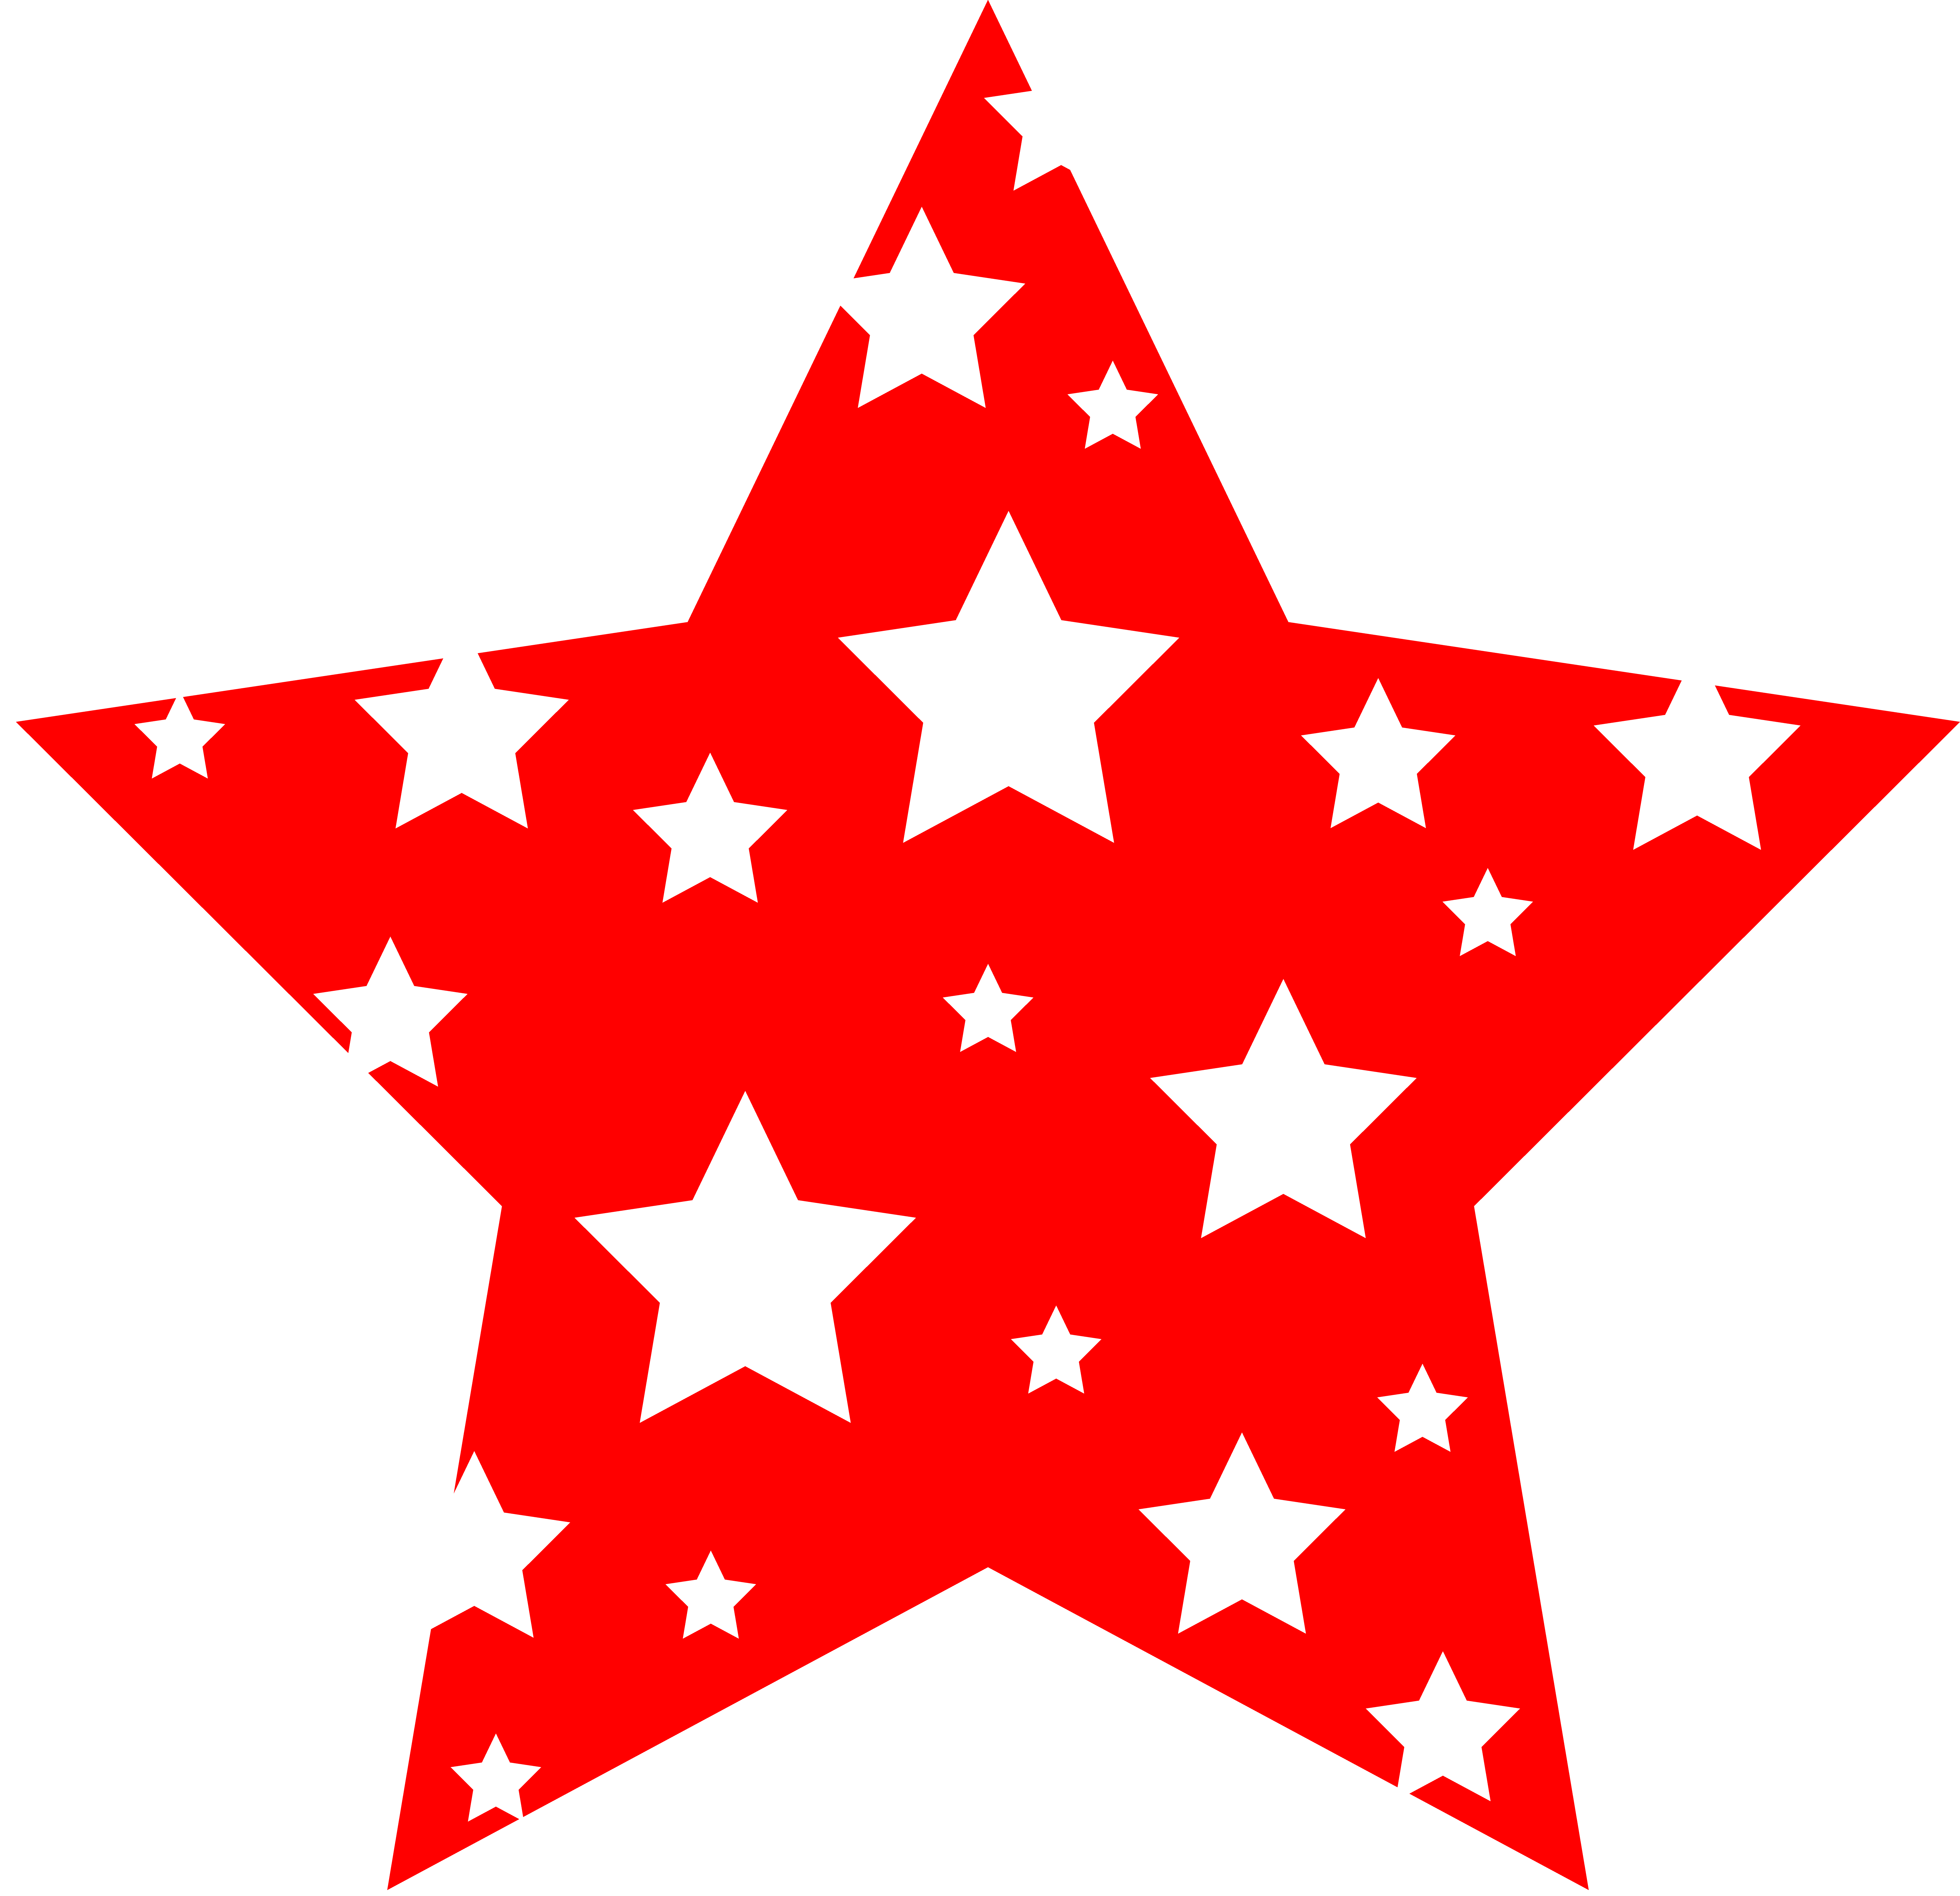 July clipart july holiday. Red shooting star free